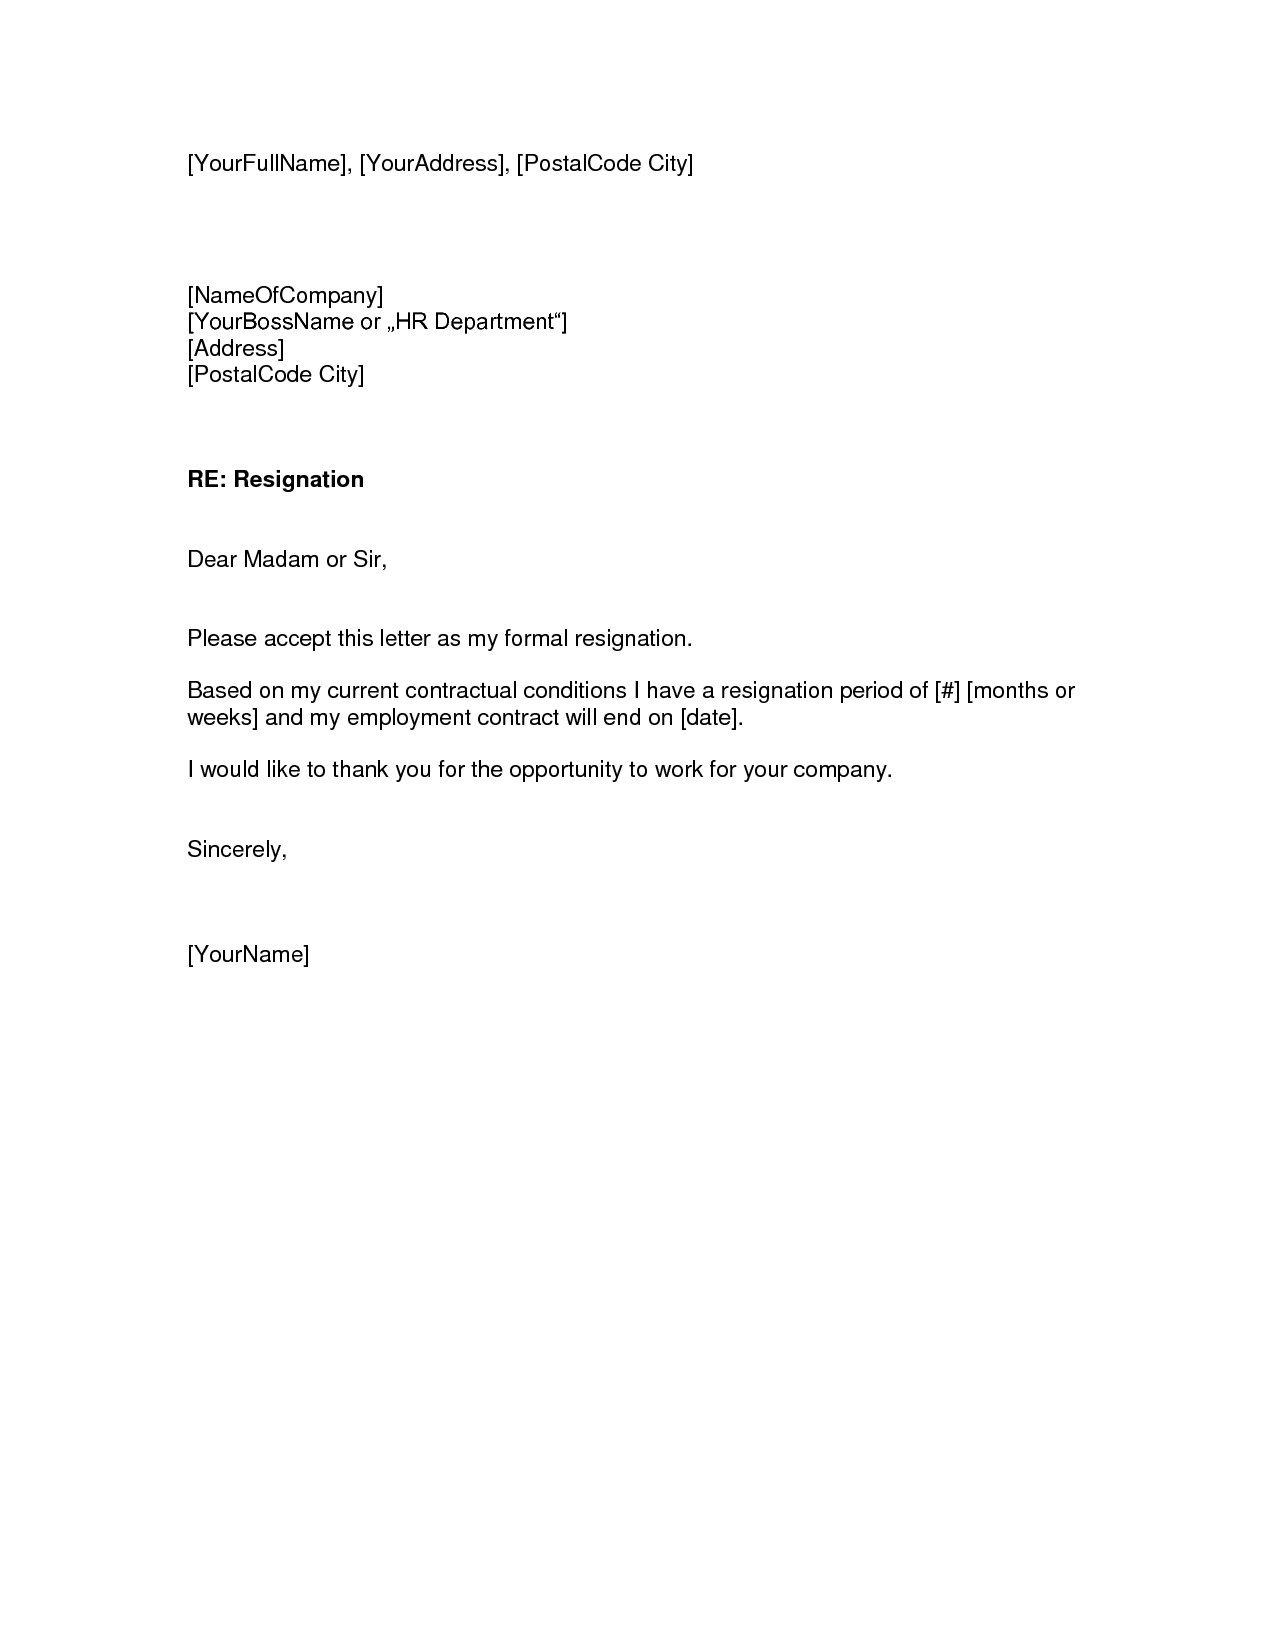 Sample resignation letter gresremmyvolunteer letter template sample resignation letter gresremmyvolunteer letter template application letter sample expocarfo Images